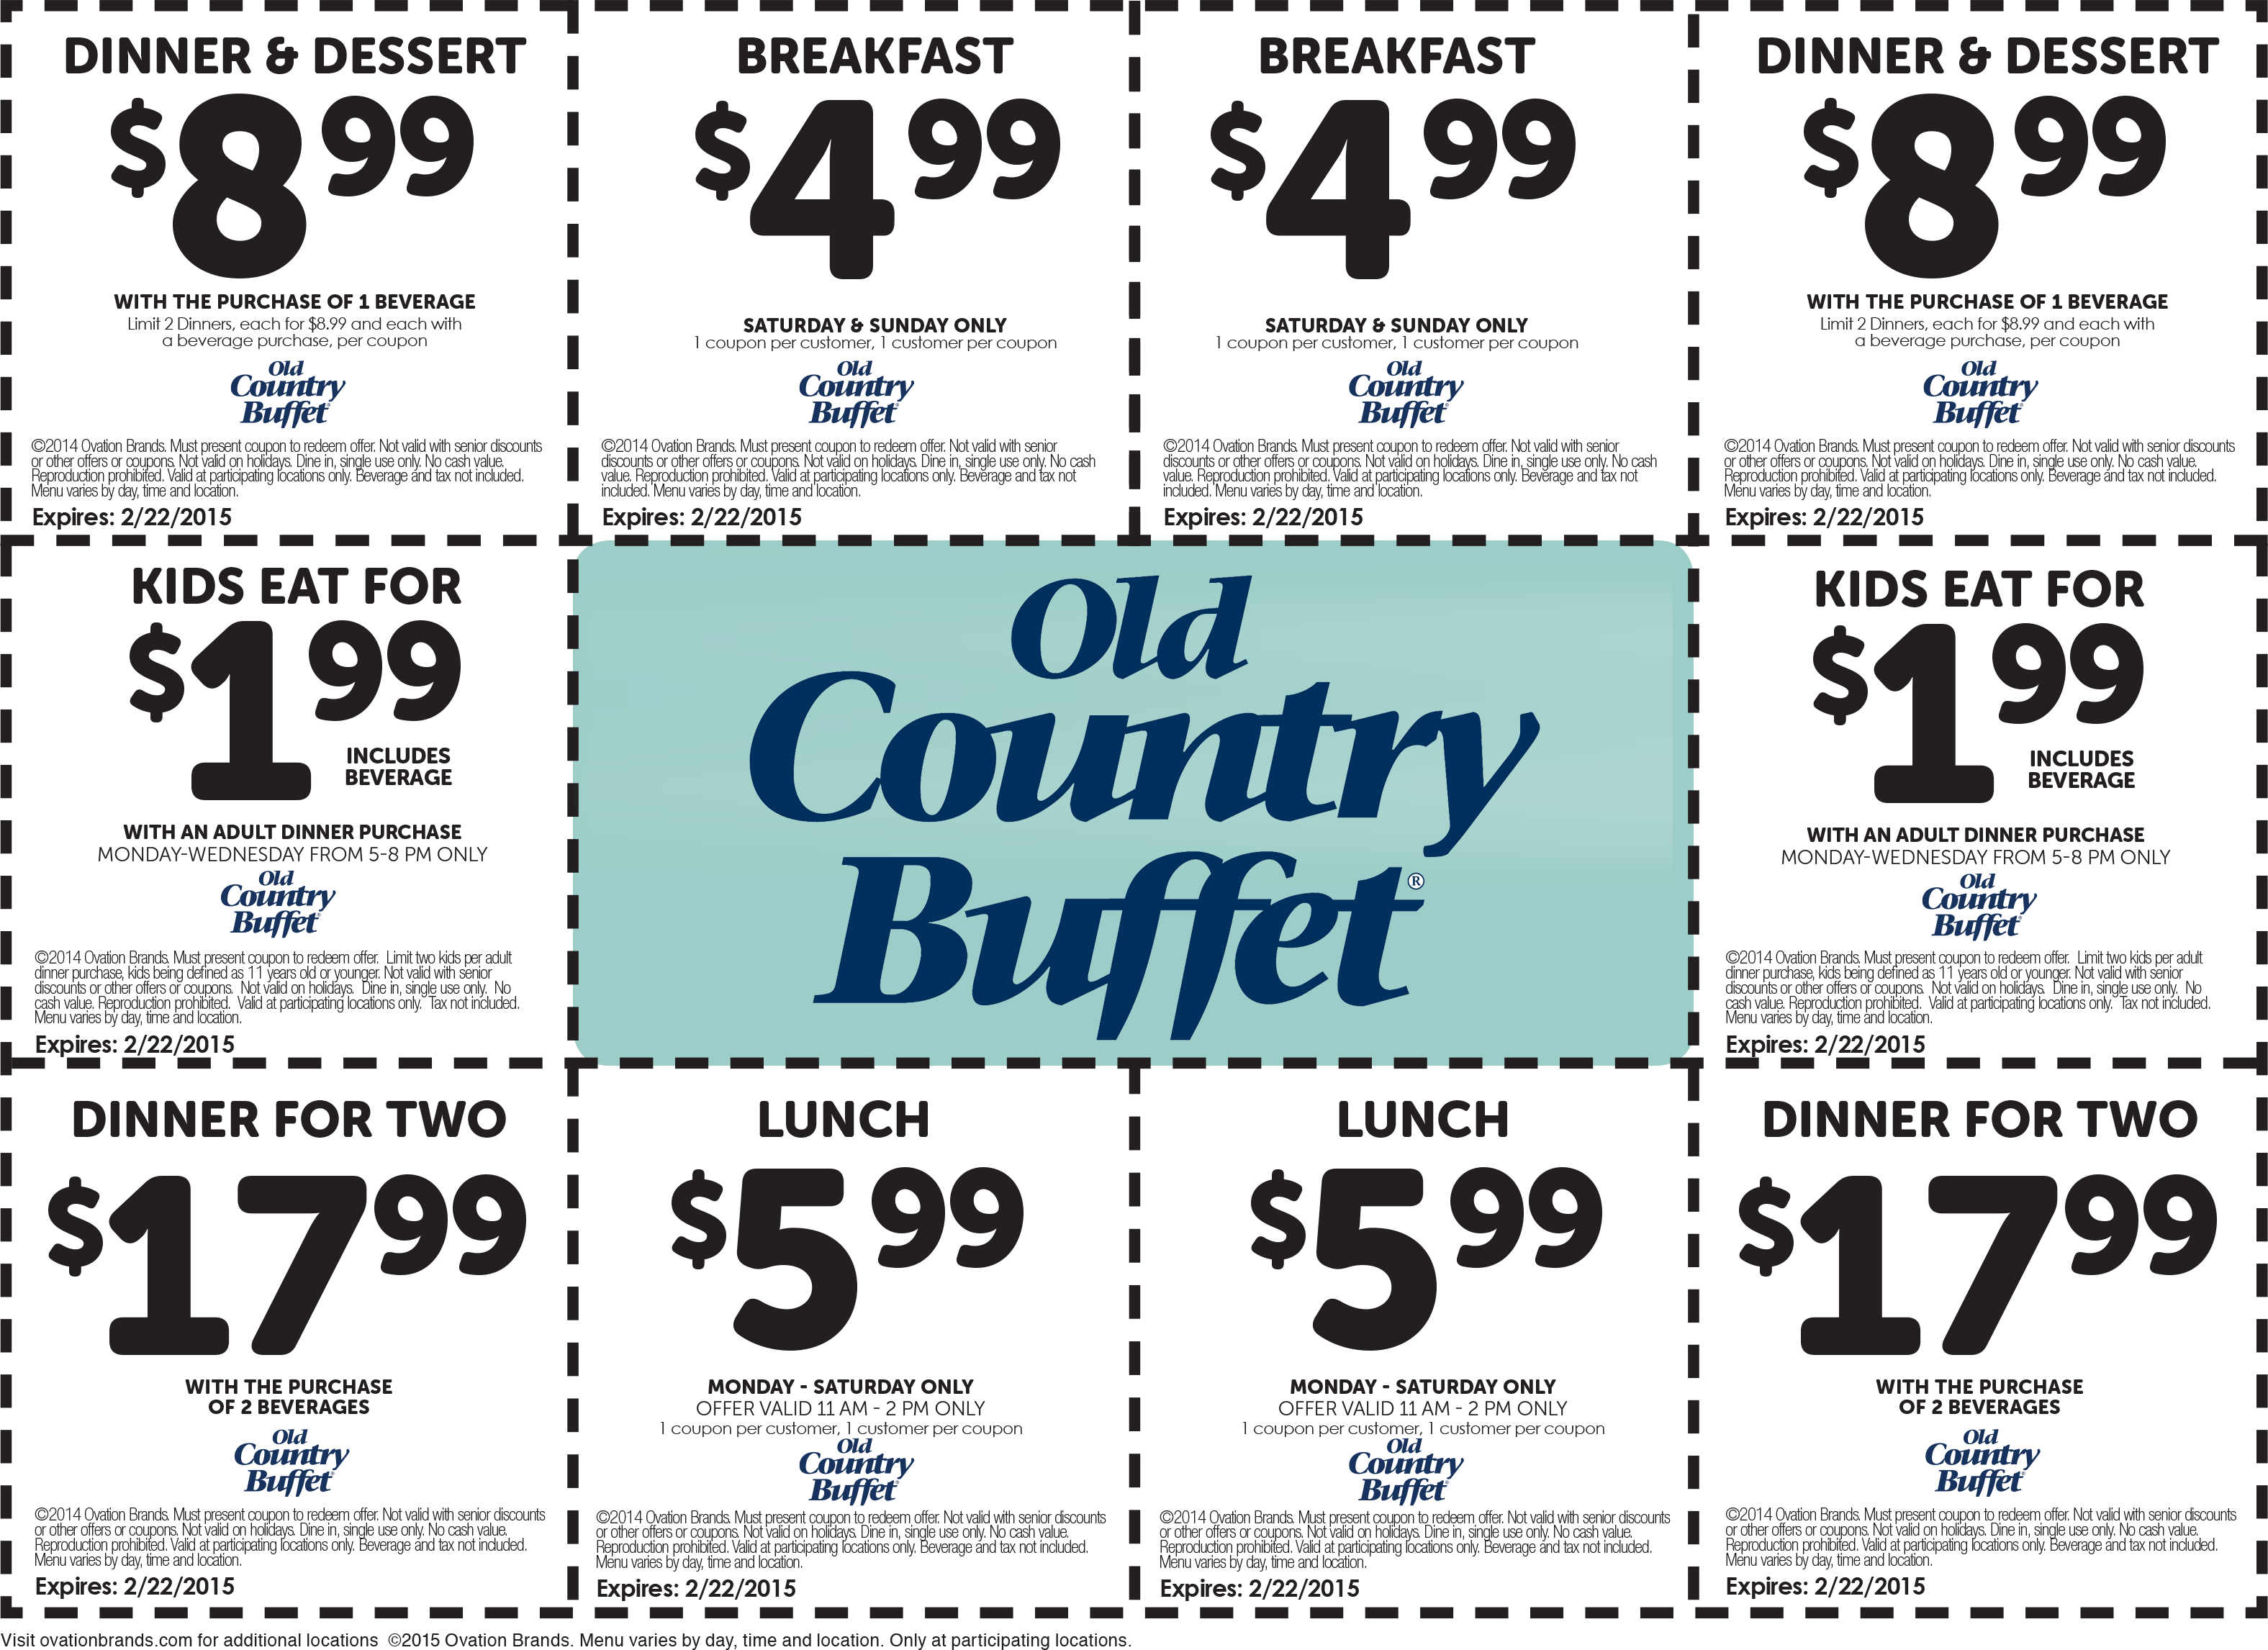 old country buffet coupons 2 kids 5 breakfast 6 lunch more rh thecouponsapp com Hometown Buffet Coupons Current Hometown Buffet Coupons Printable 2017